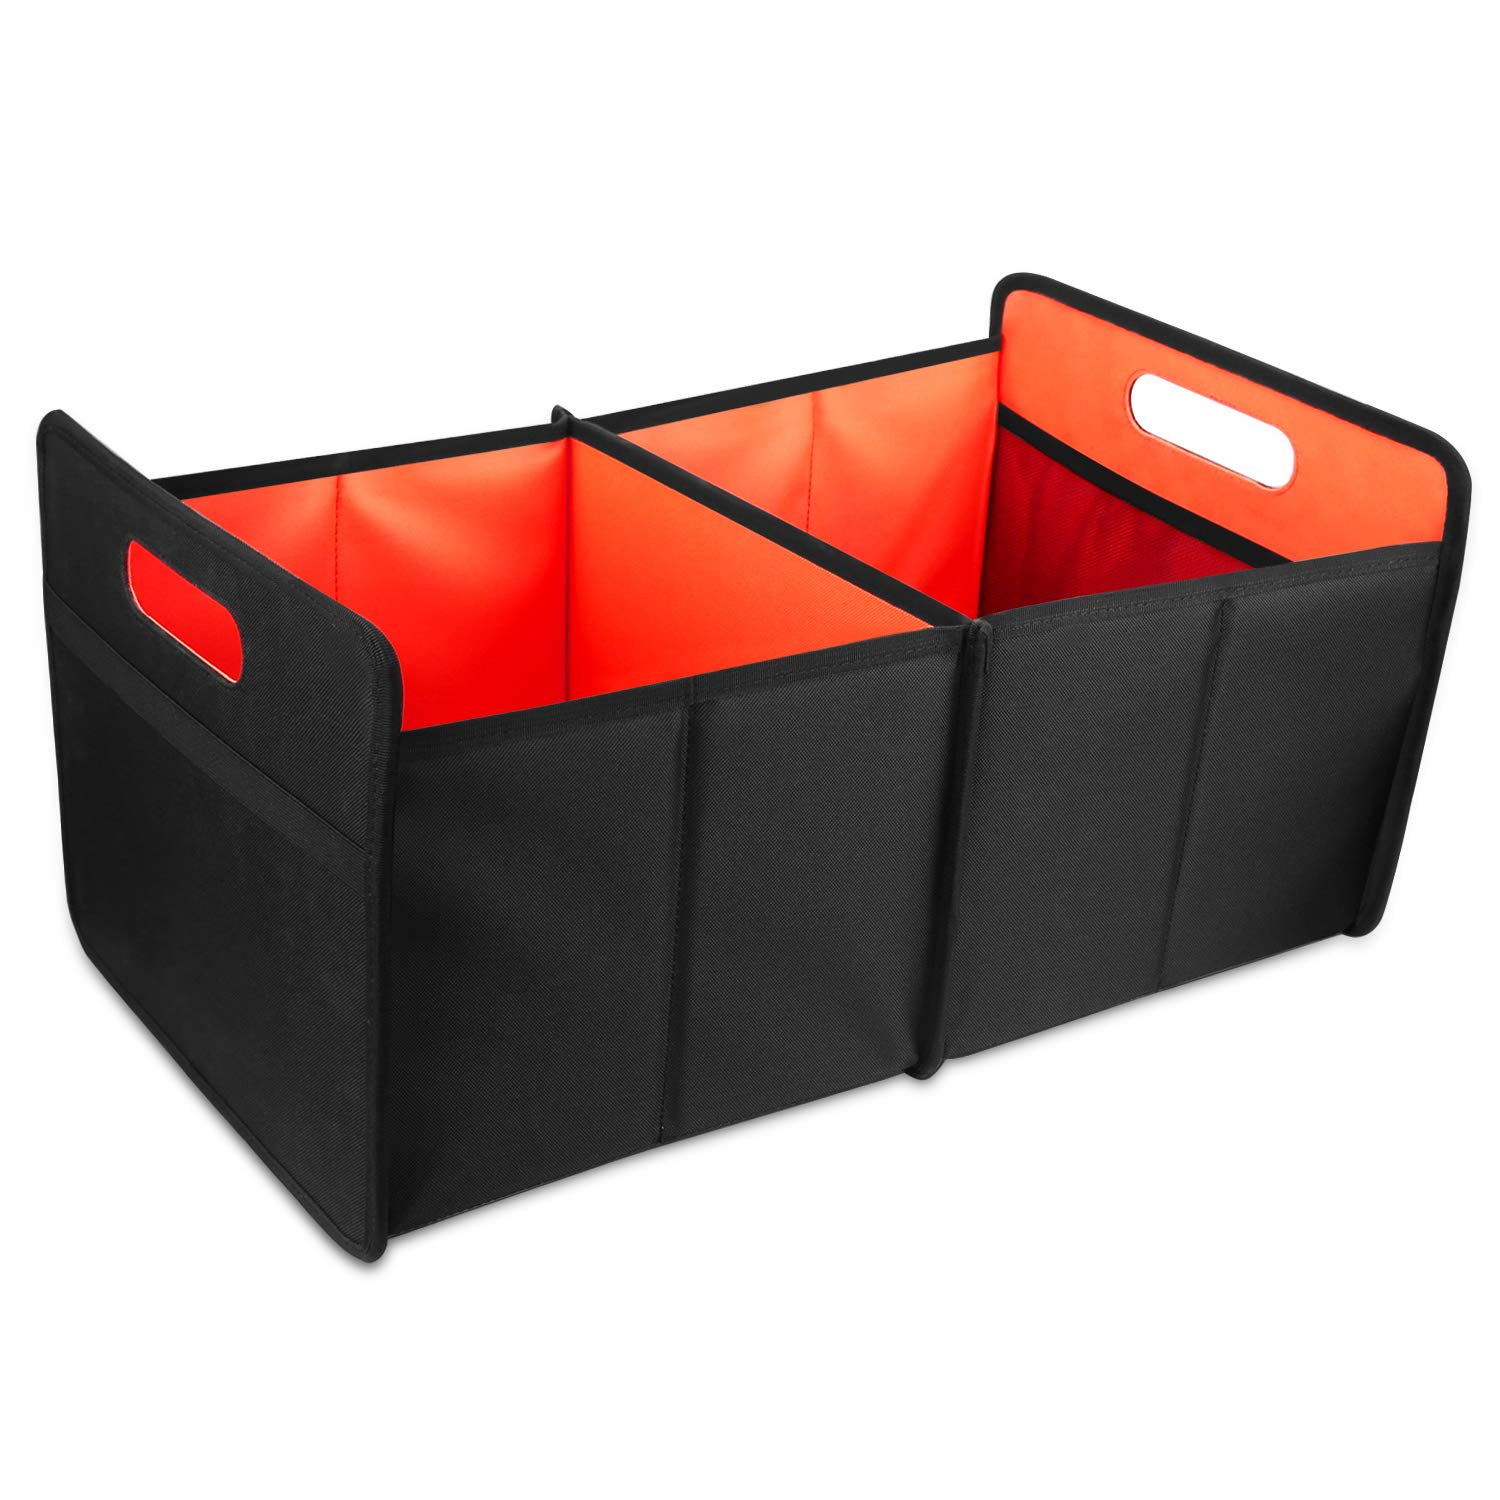 Famistar Large Car Trunk Organizer Collapsible Expandable Cargo Storage Container for SUV,Car,Truck,Van,RV,Home,Camping,with Anti-Slip Bottom/&Cover